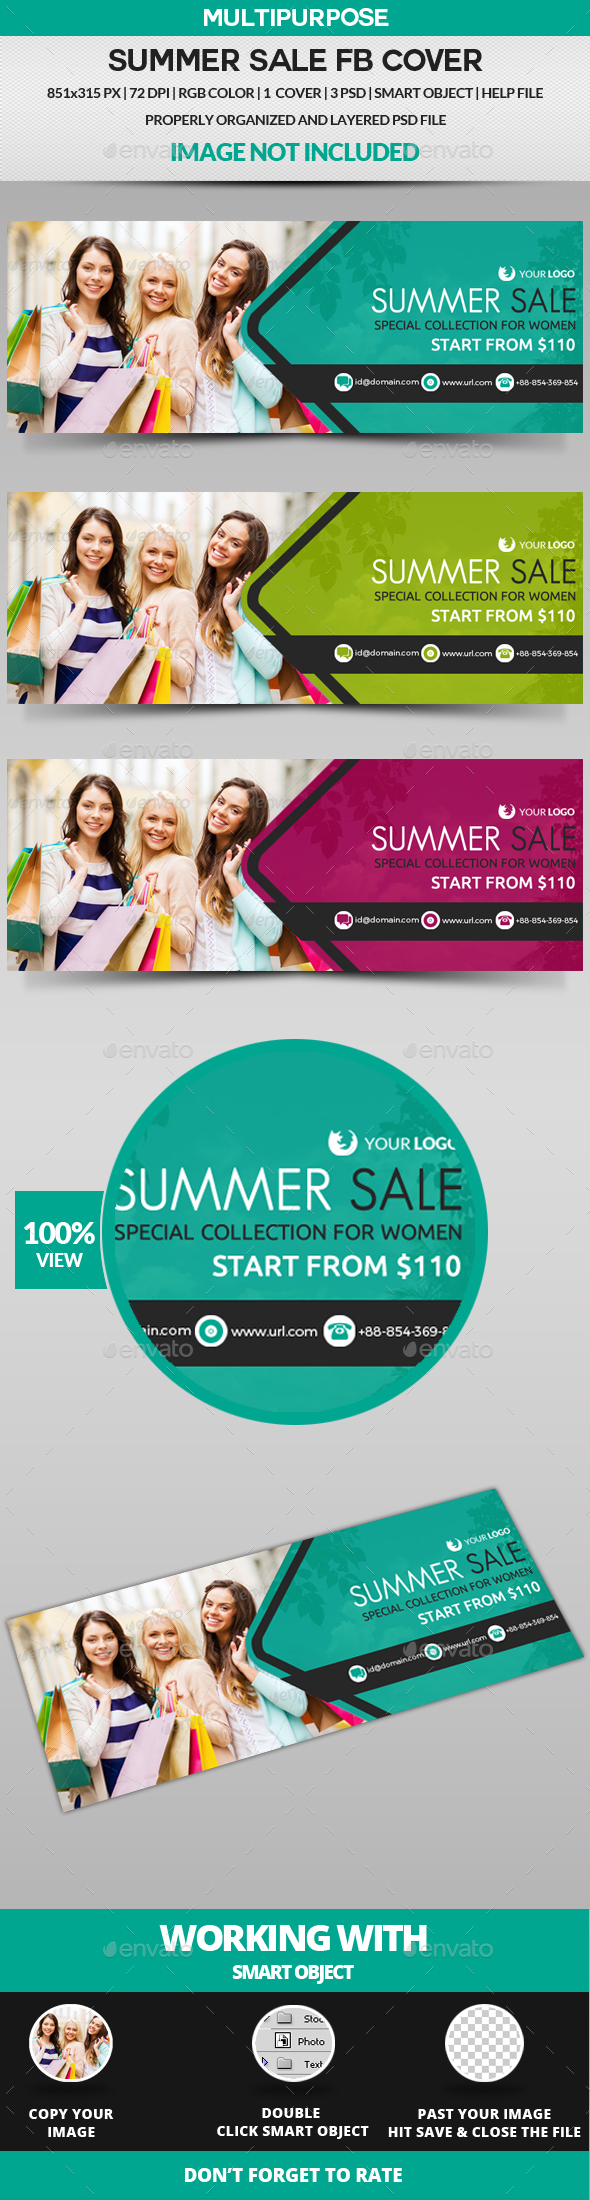 Summer Sale Facebook Cover By Greatbon9 Graphicriver